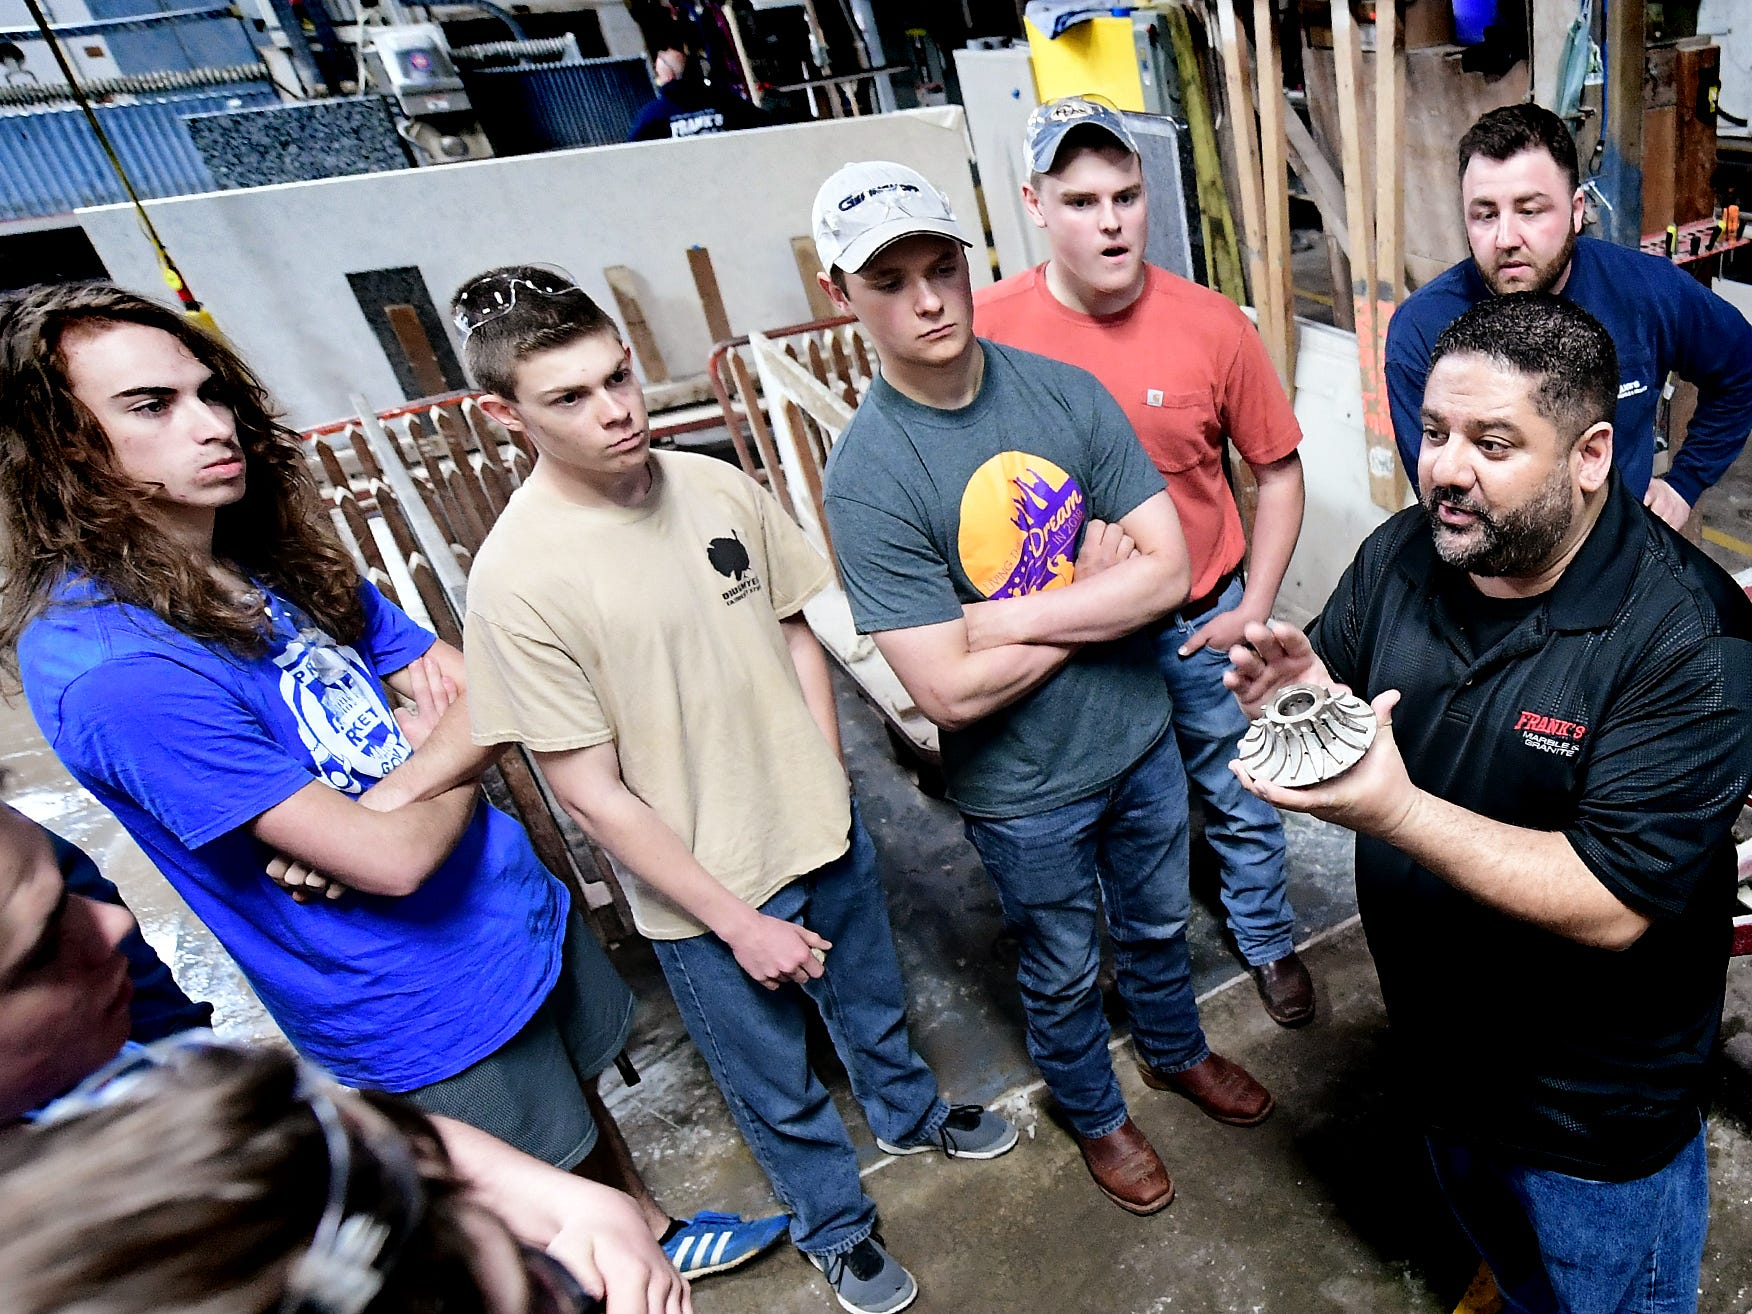 Frank's Marble & Granite owner Carmine Pantano shows a diamond router bit to students during a tour of the Red Lion business during the York Builders Association 2nd Annual Construction Career Day Monday, April 8, 2019. The goal of the program is to raise student-awareness about local career opportunities in the construction field. Association members host the students. The association has planned similar events at various companies through April 17. Nine area high schools are participating in the program, according to the builders association. Bill Kalina photo